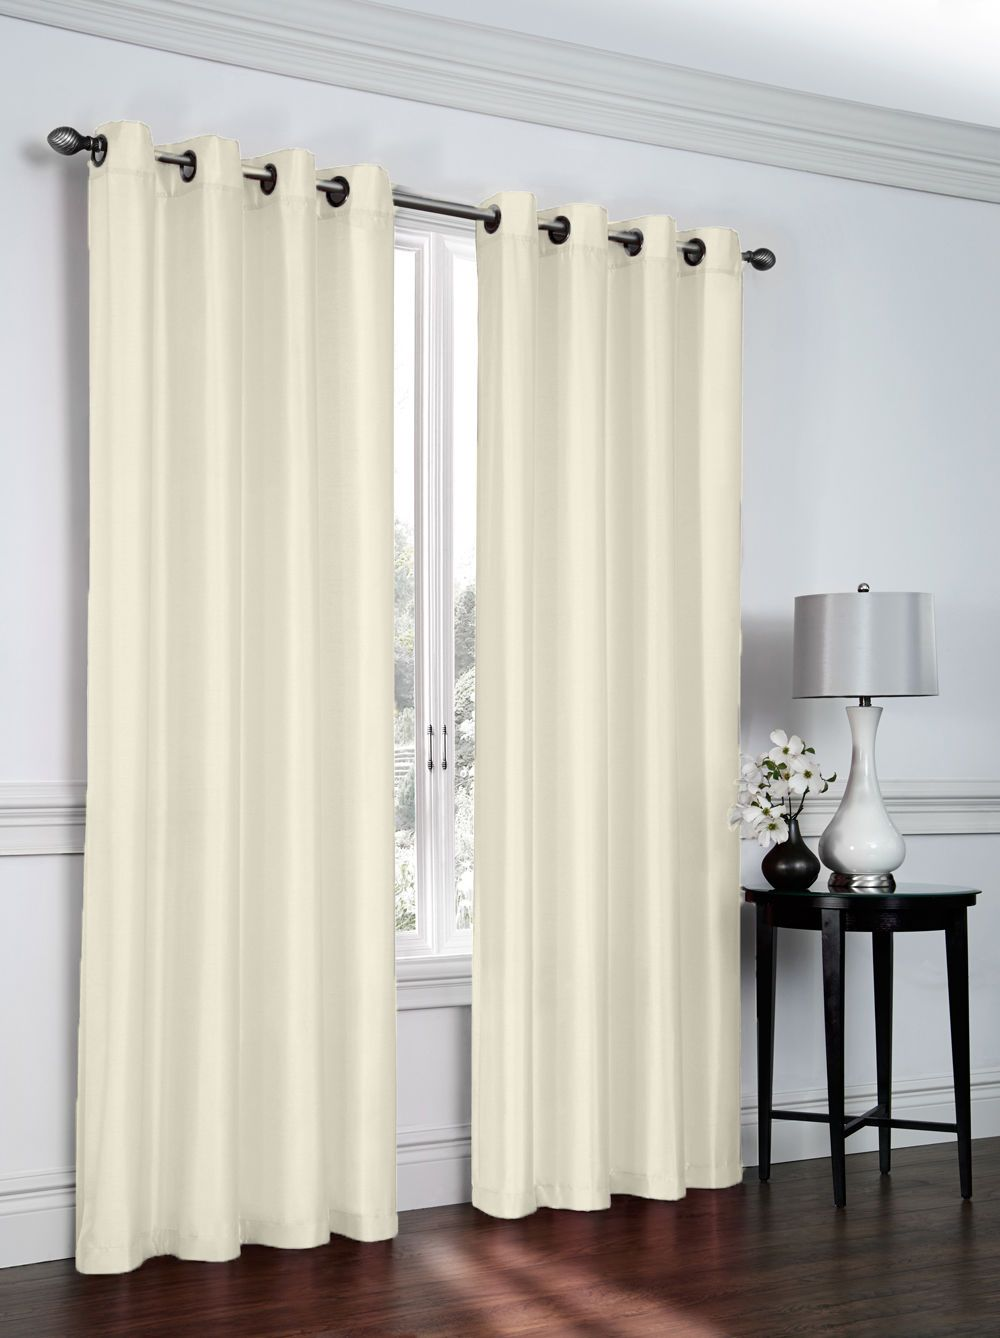 Home Curtains Grommet Curtains Panel Curtains